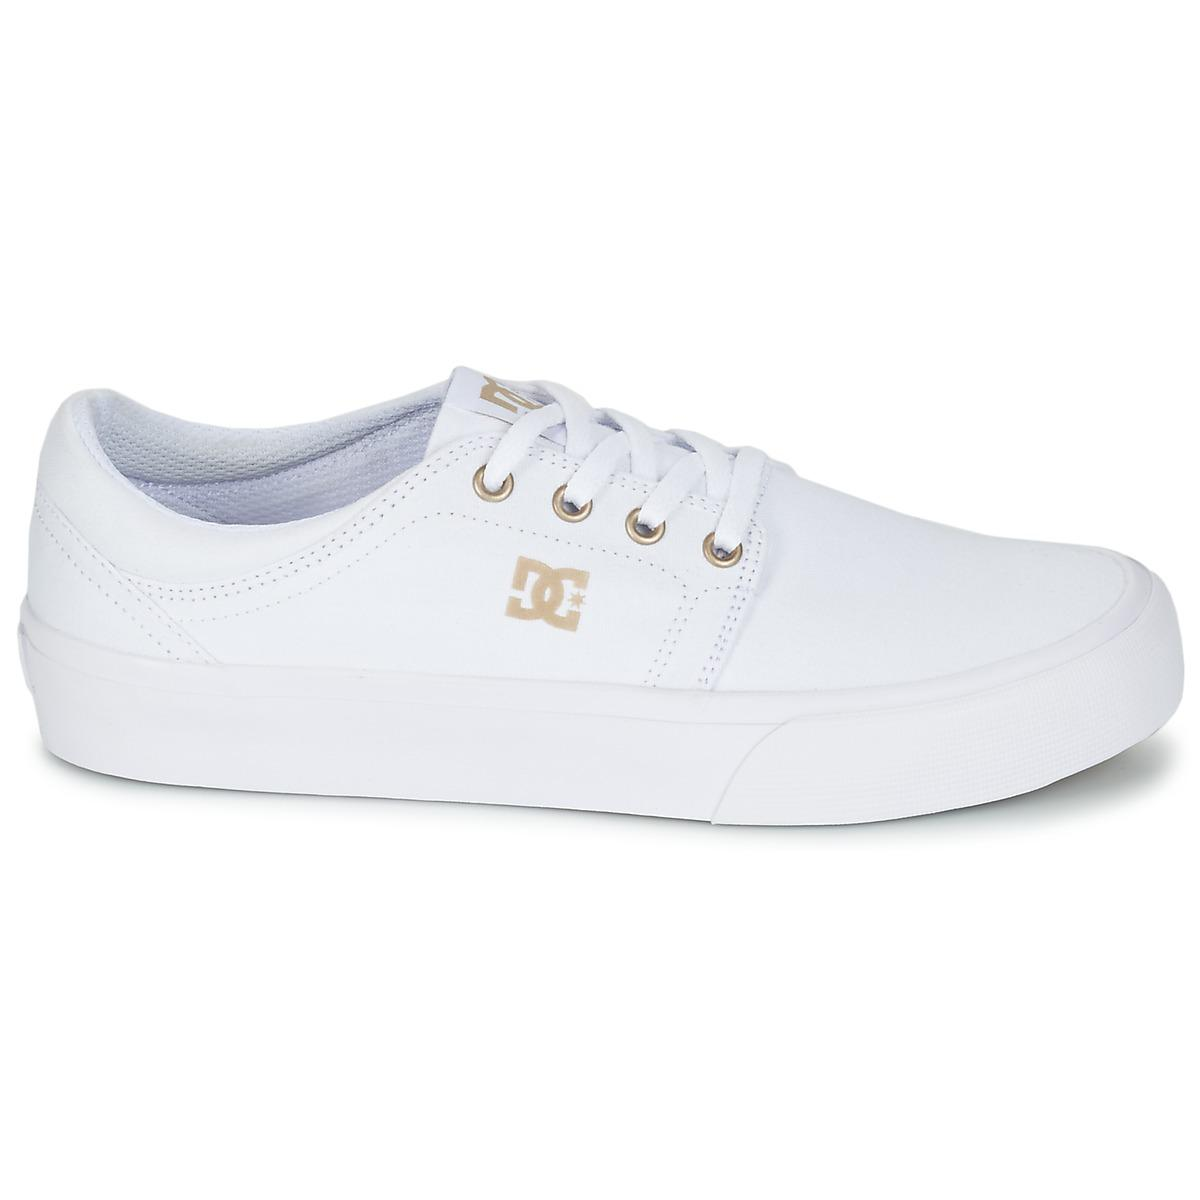 fb1e0c9715fe77 DC Shoes Trase Tx J Shoe Wg5 Women s Shoes (trainers) In White in ...